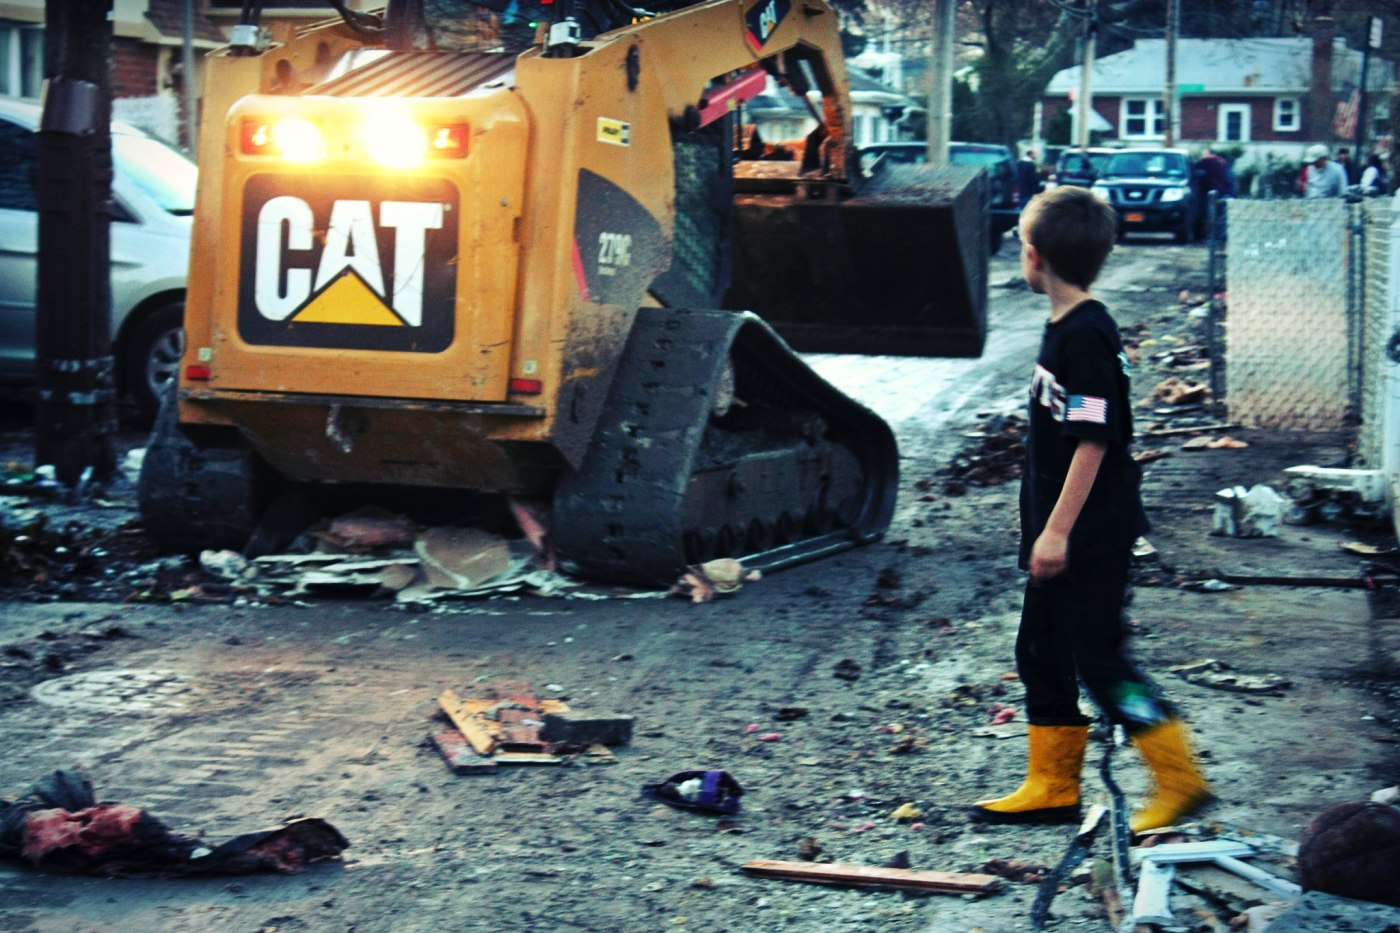 November 11th, 2012: A young boy looks on as a skid loader clears debris off of the road in New Dorp Beach, Staten Island.